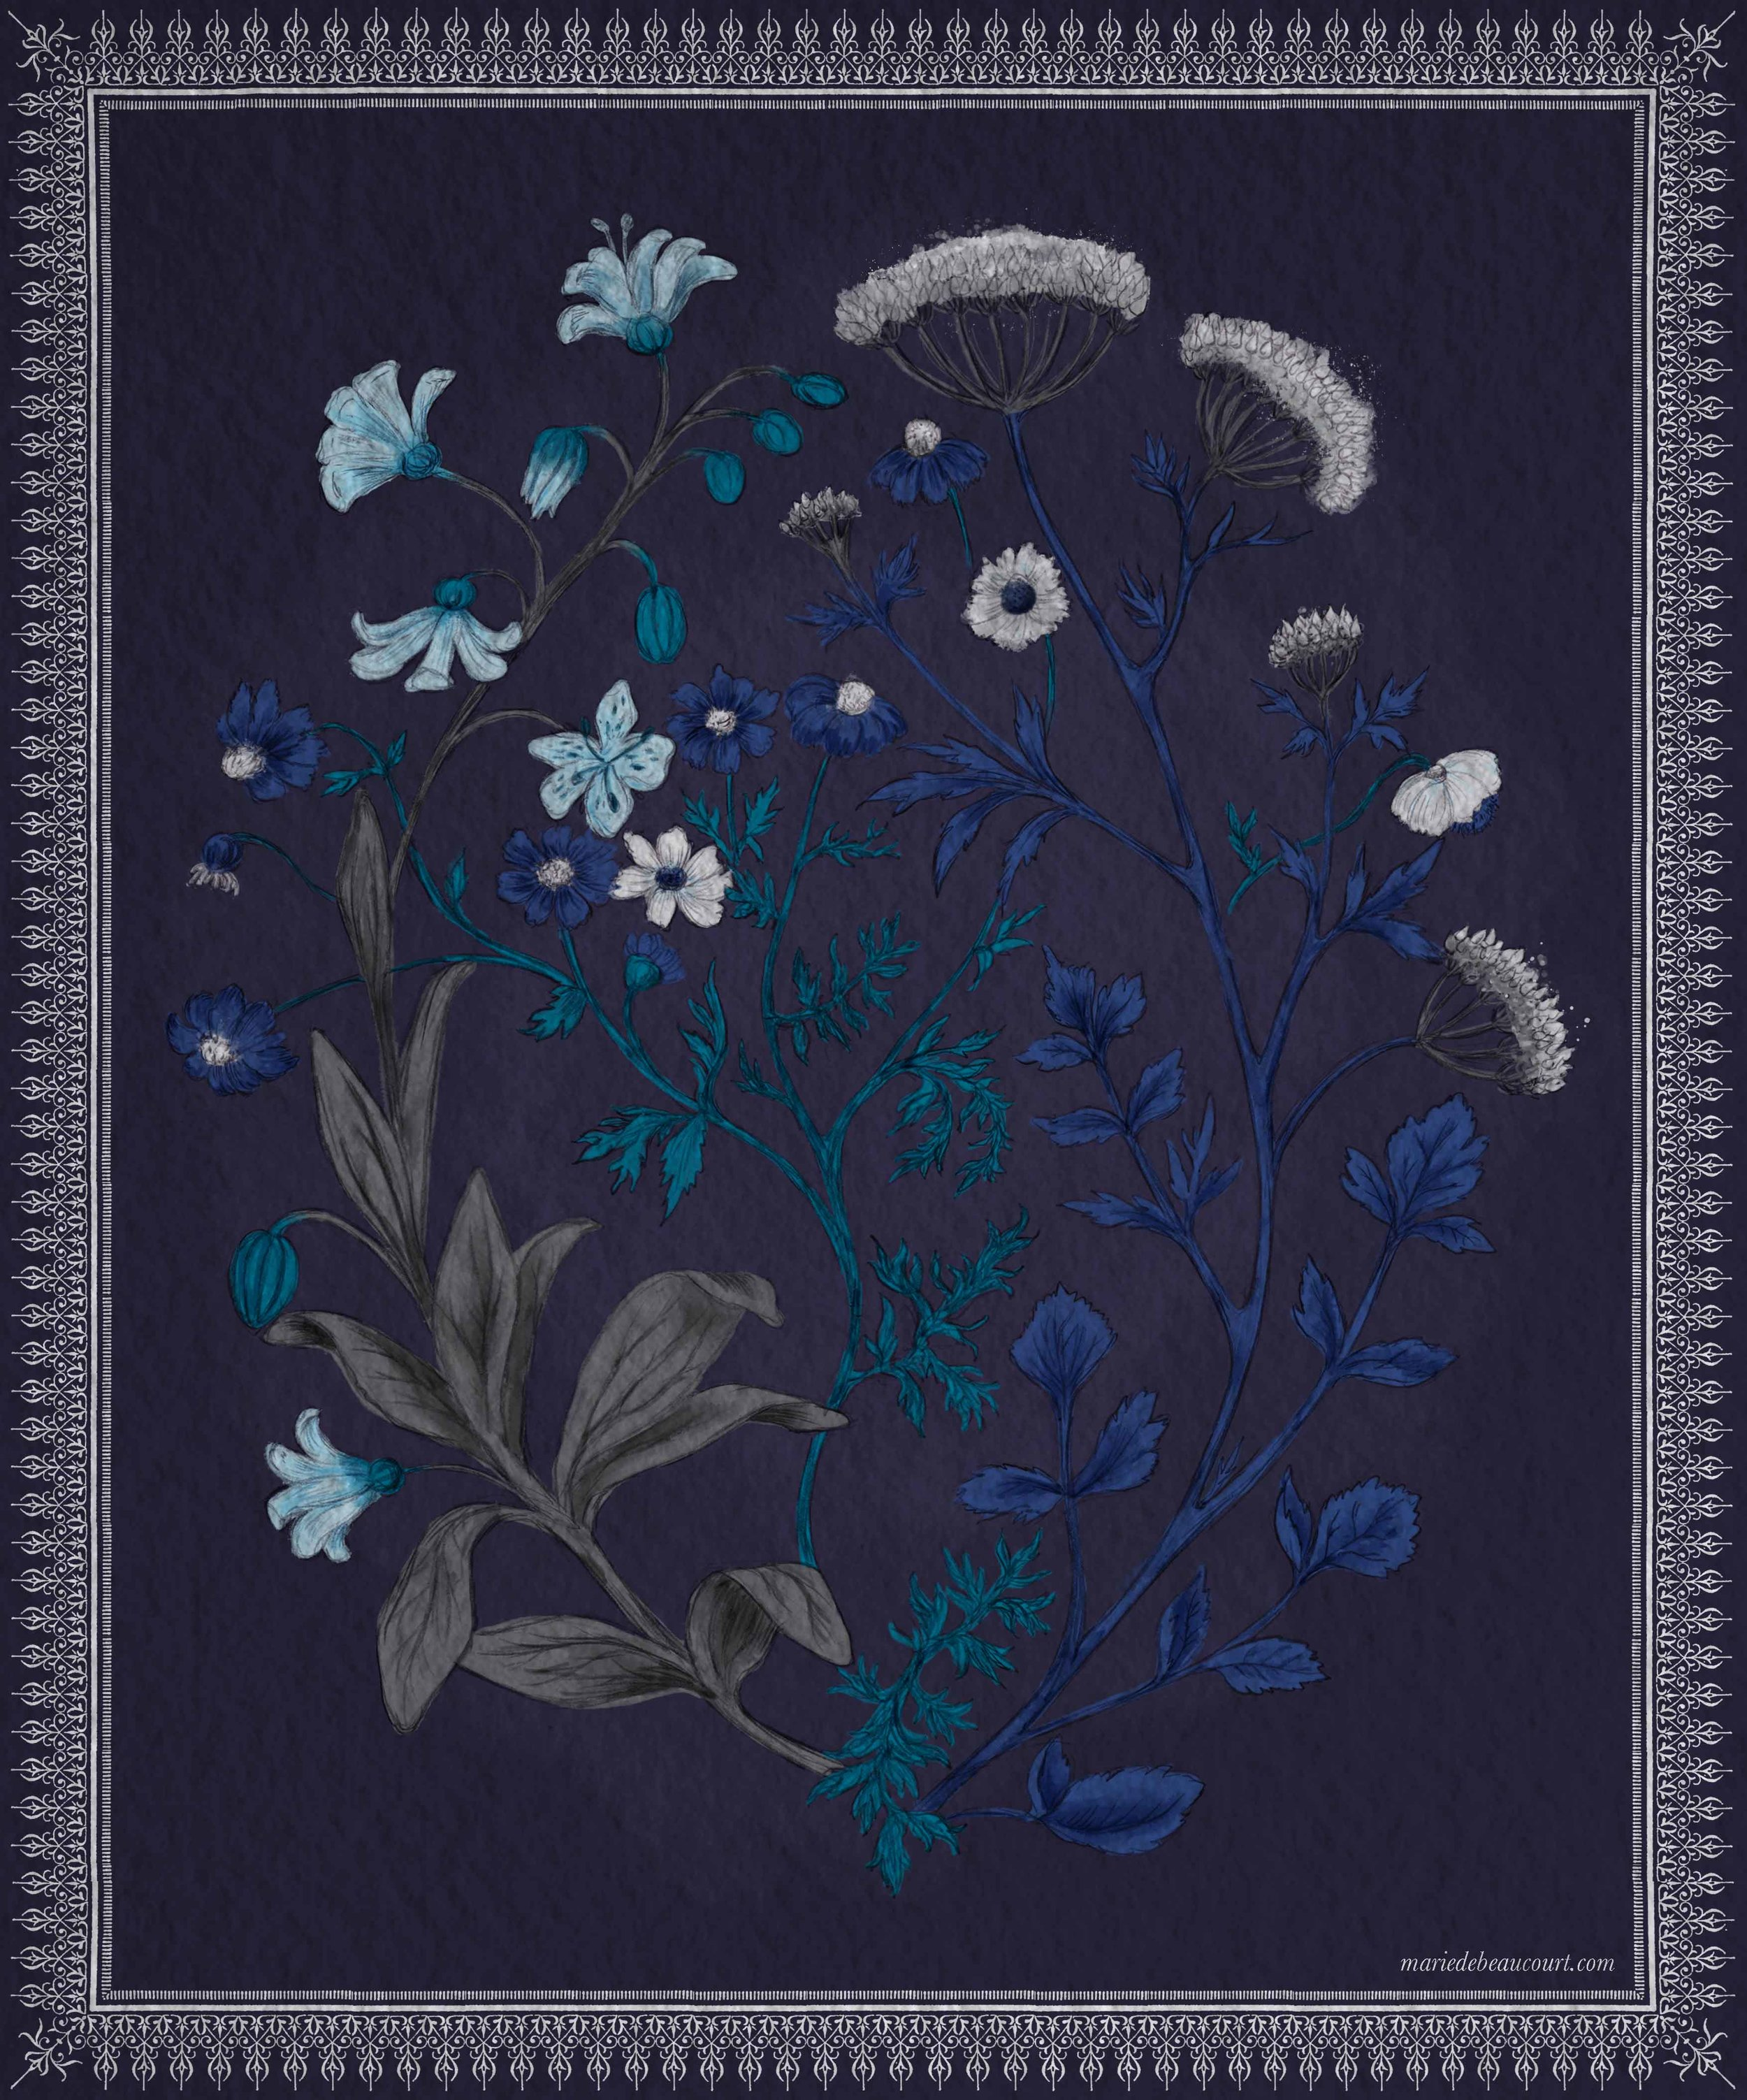 Marie-de-beaucourt-2018-Botanic-illustration-Bouquet-Bleu-WEB.jpg